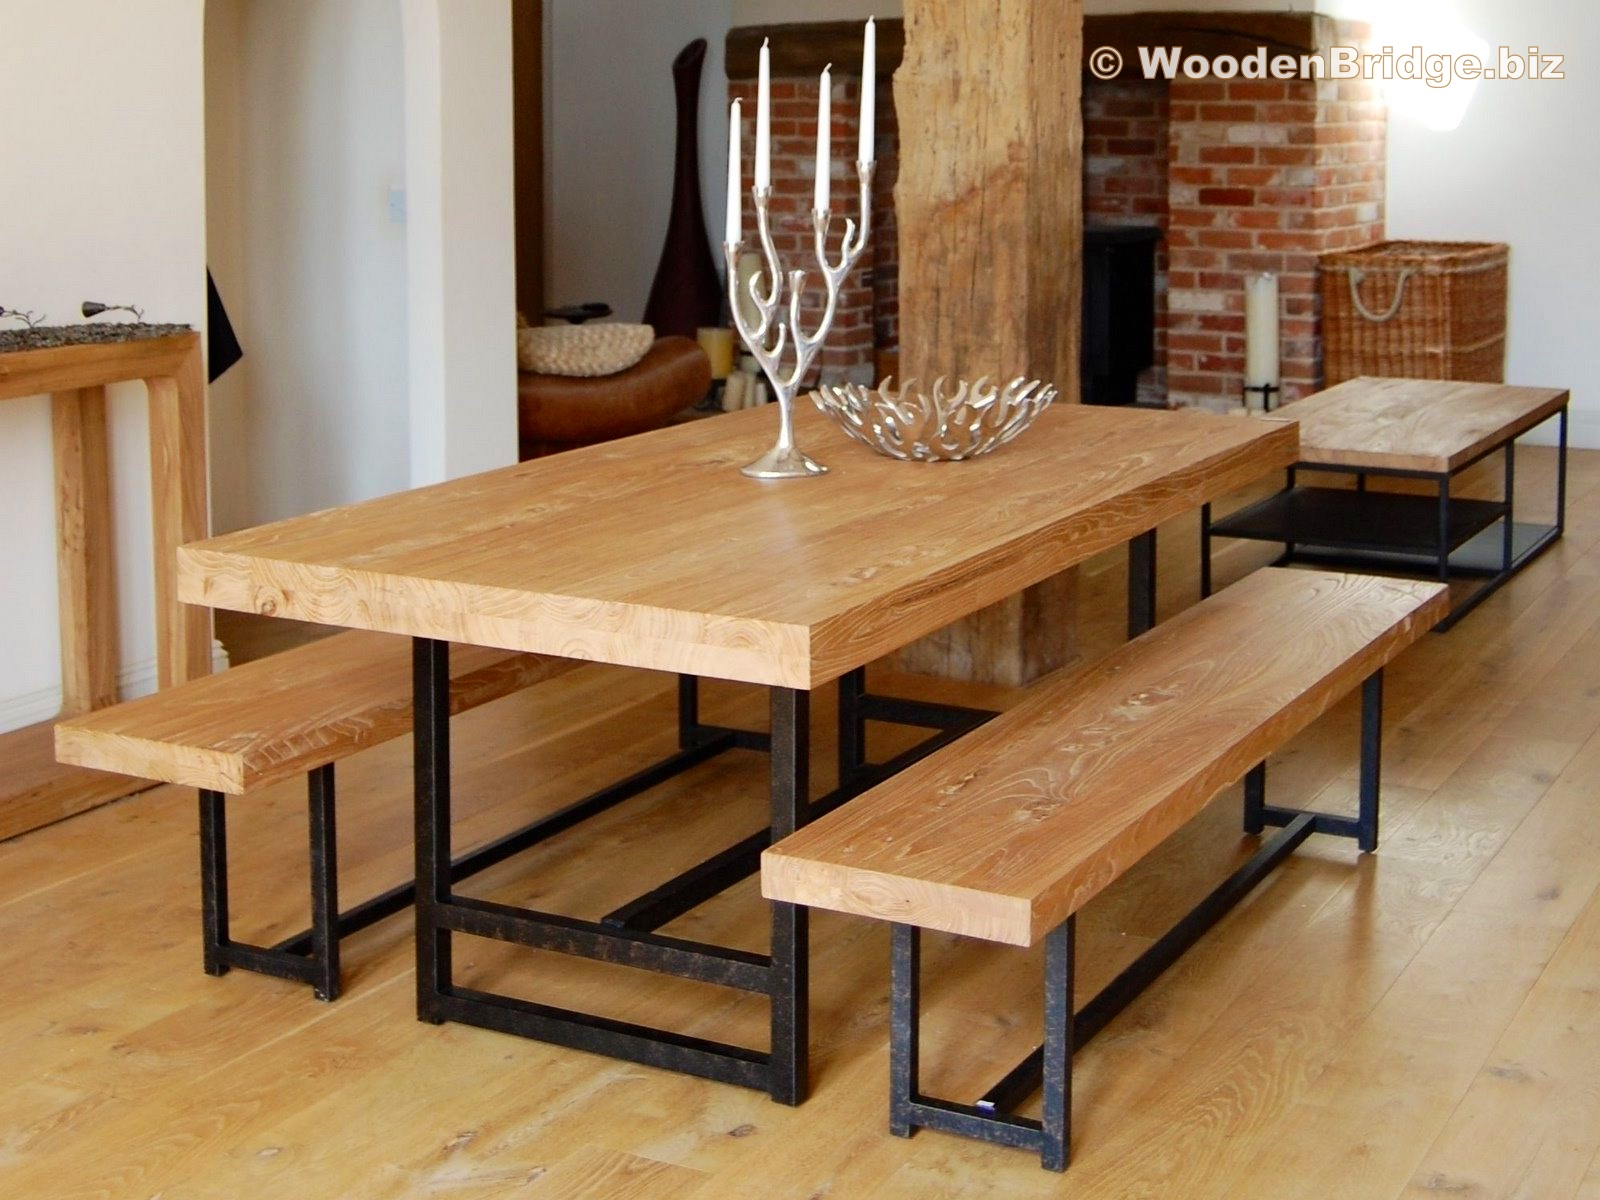 Reclaimed Wood Dining Table Ideas - 1600 x 1200